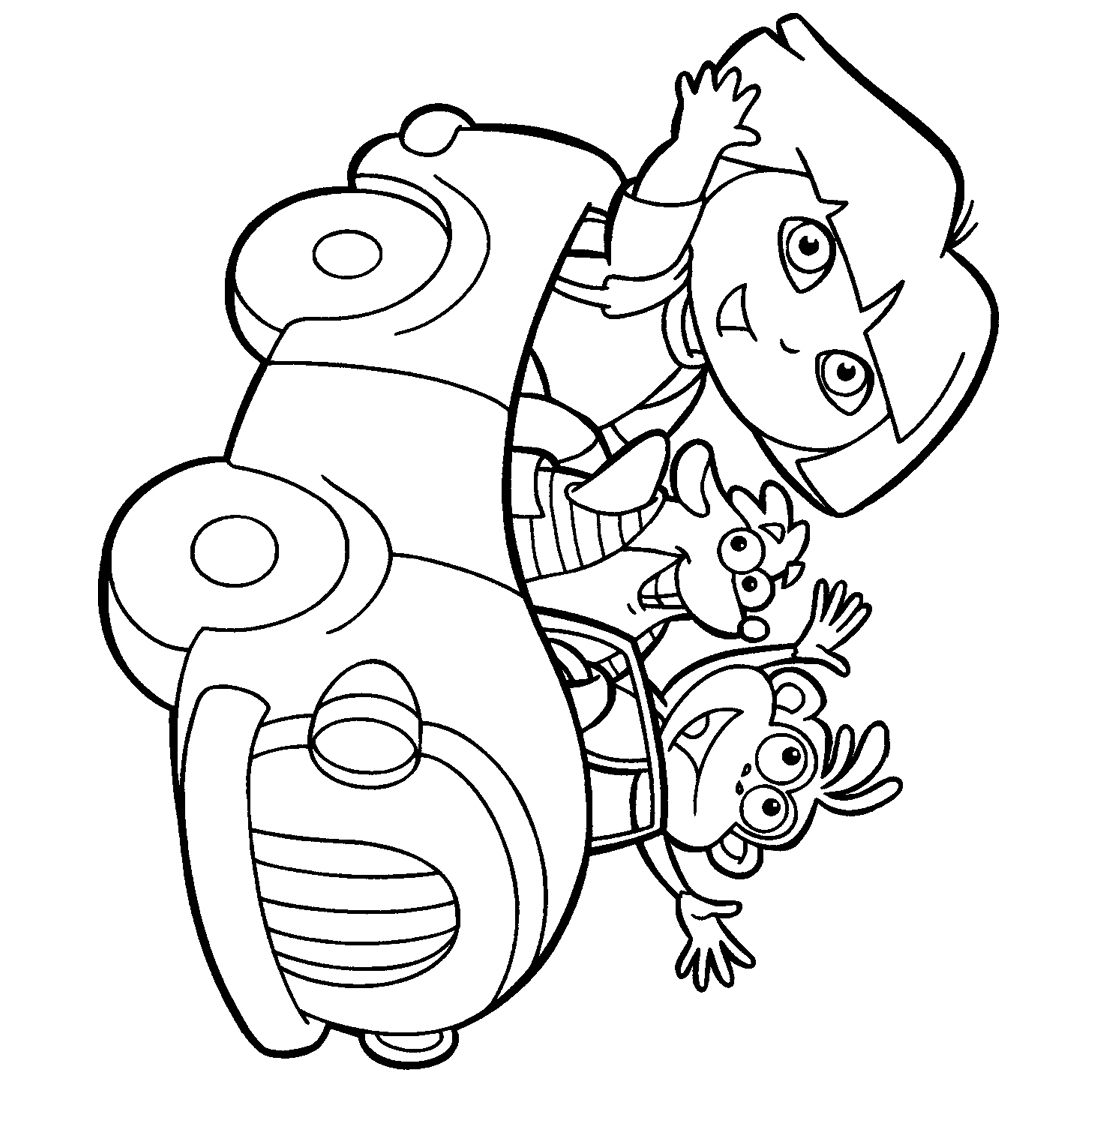 children coloring pages printable coloring pages for kids coloring pages for kids pages children coloring